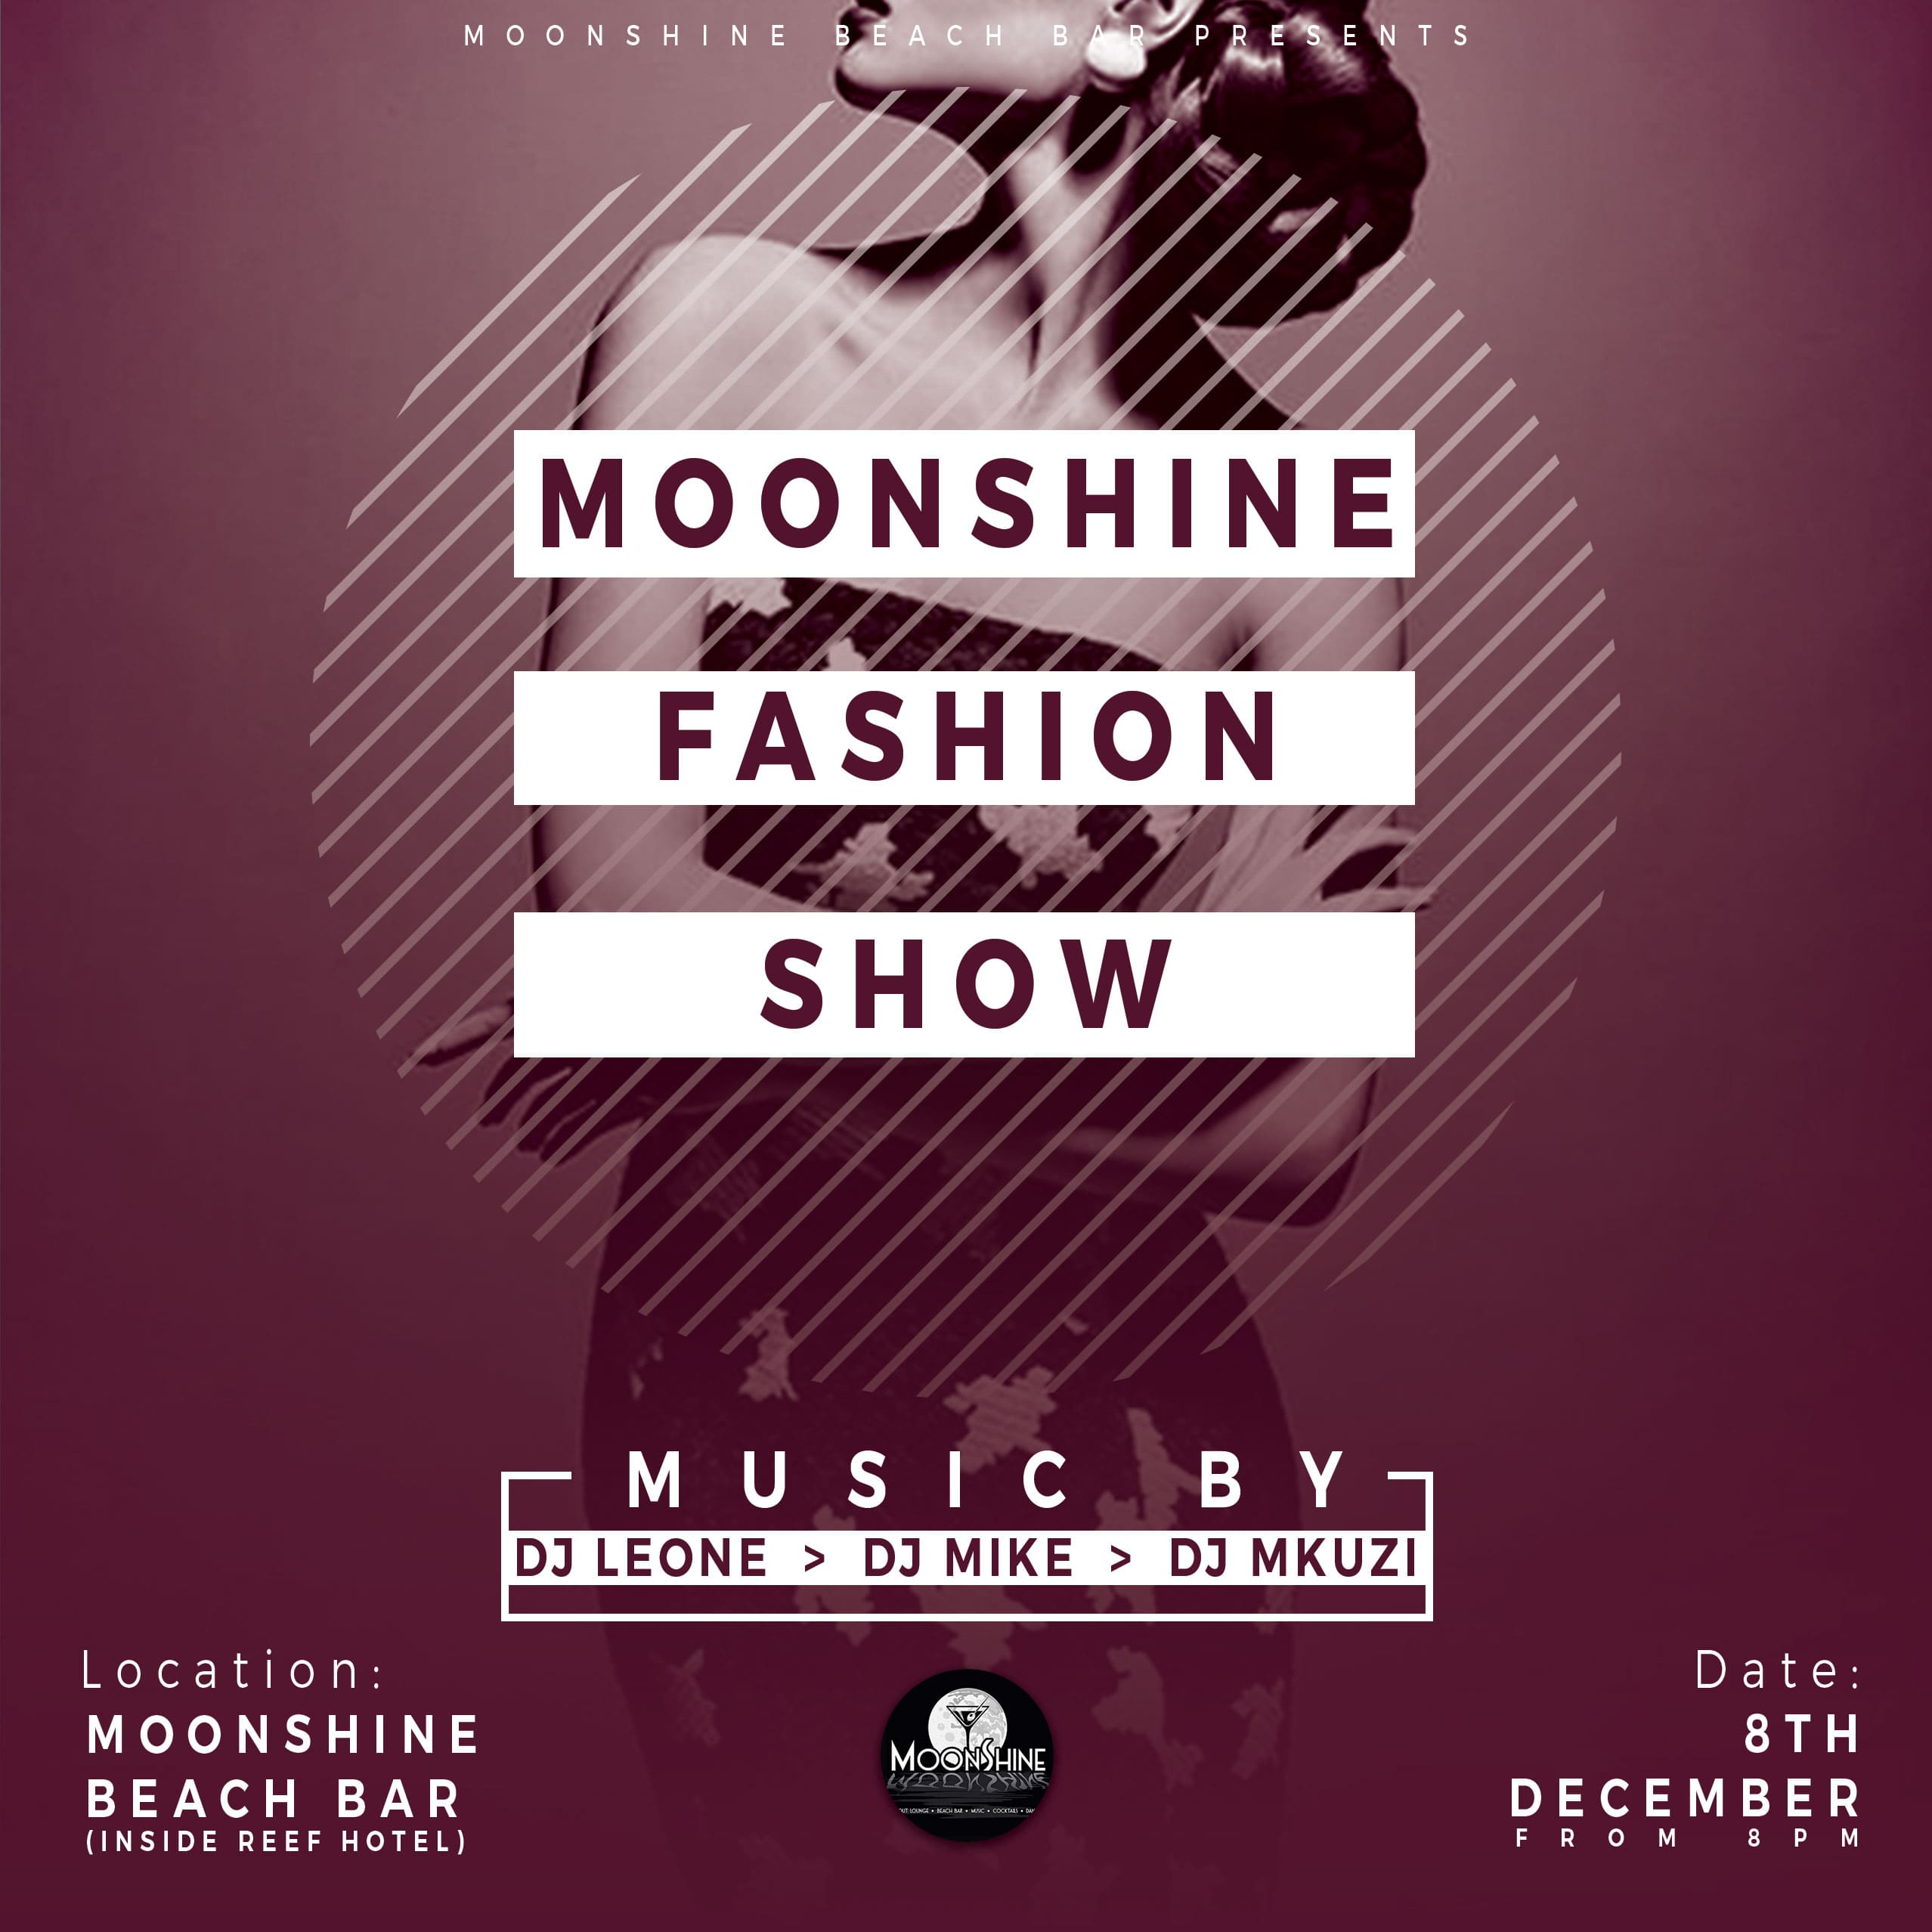 MOONSHINE-FASHION-SHOW-min